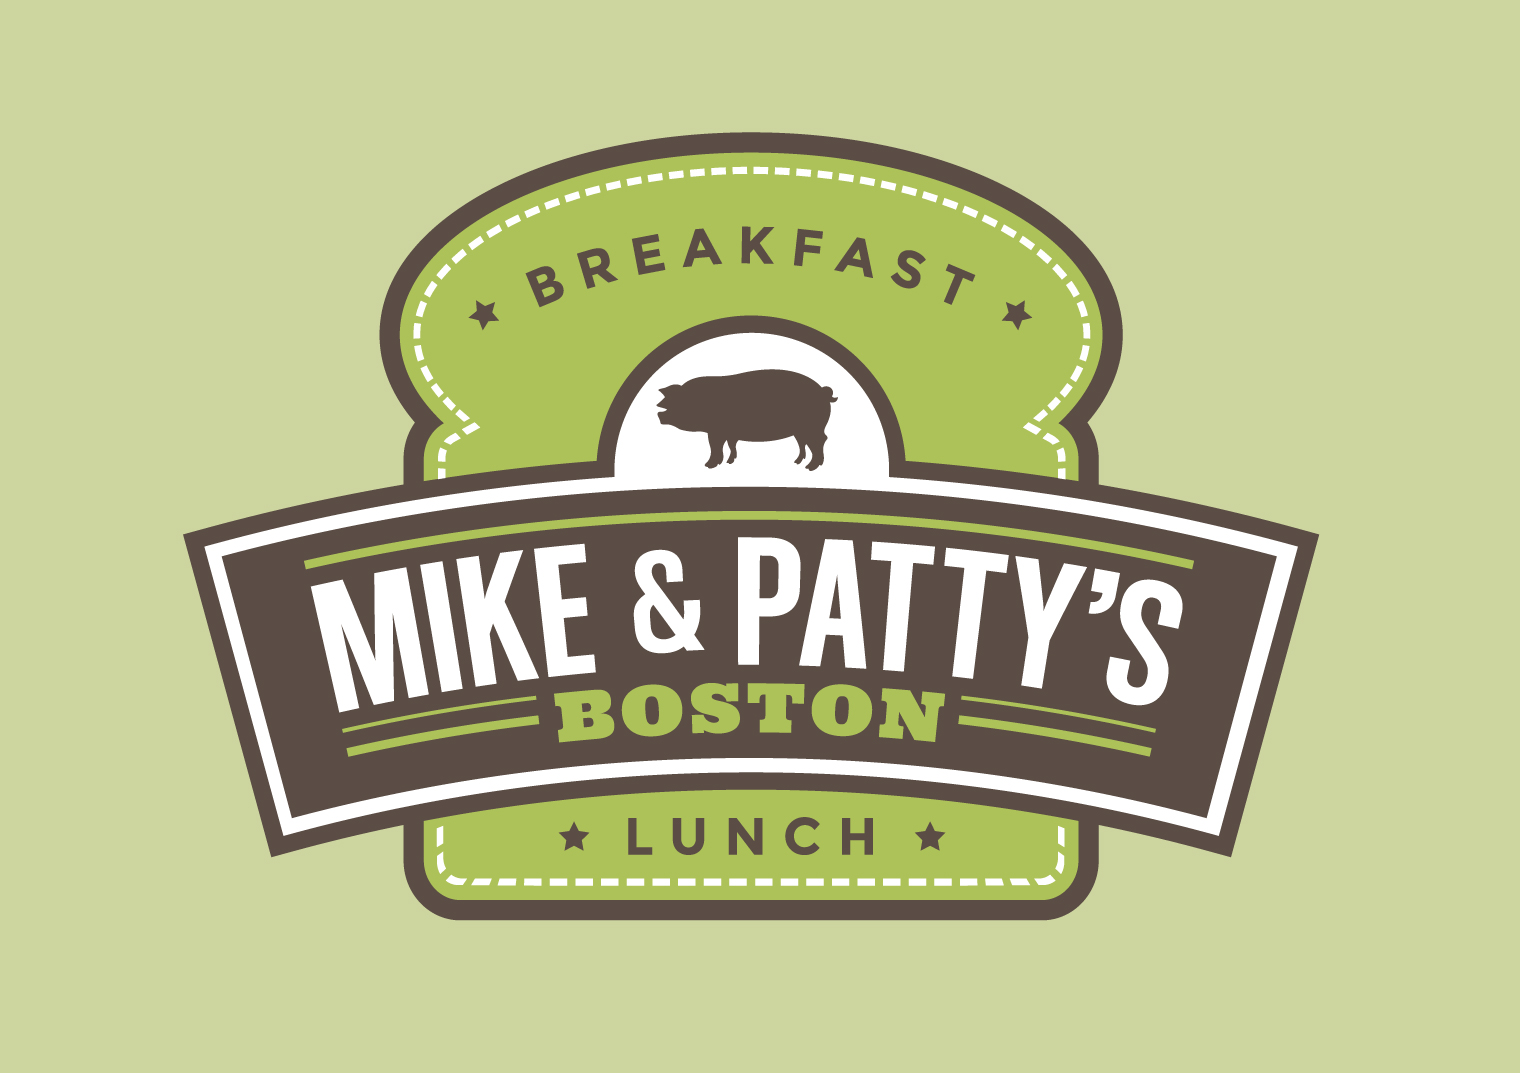 Mike & Patty's - Boston's Highest Rated Breakfast & Sandwiches - 617